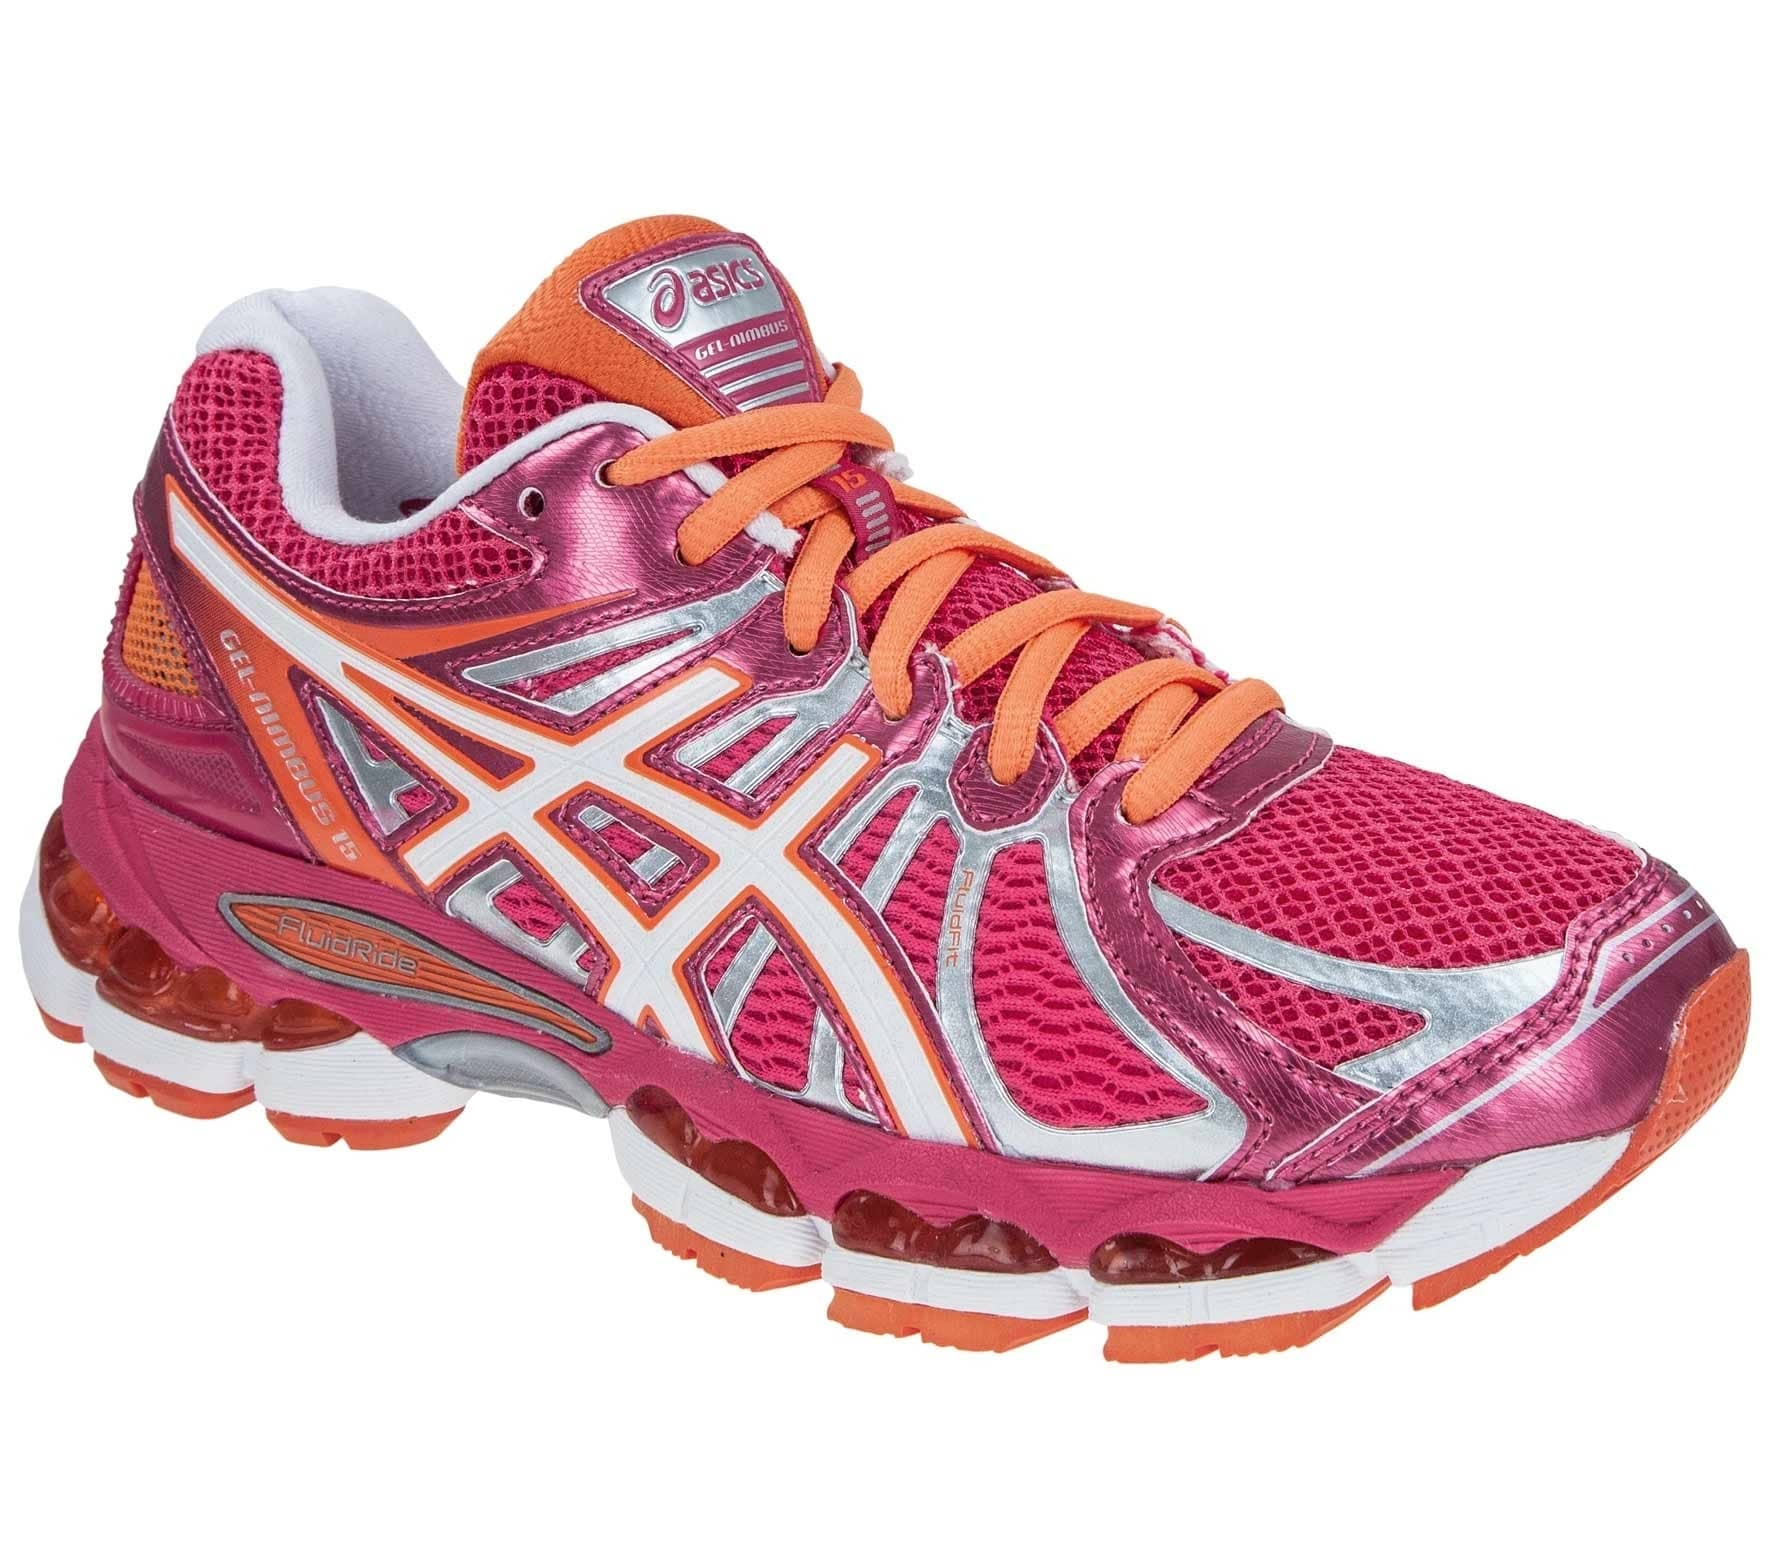 meilleur service 7f7b1 cbbe5 ASICS Gel-Nimbus 15 women's running shoes Women